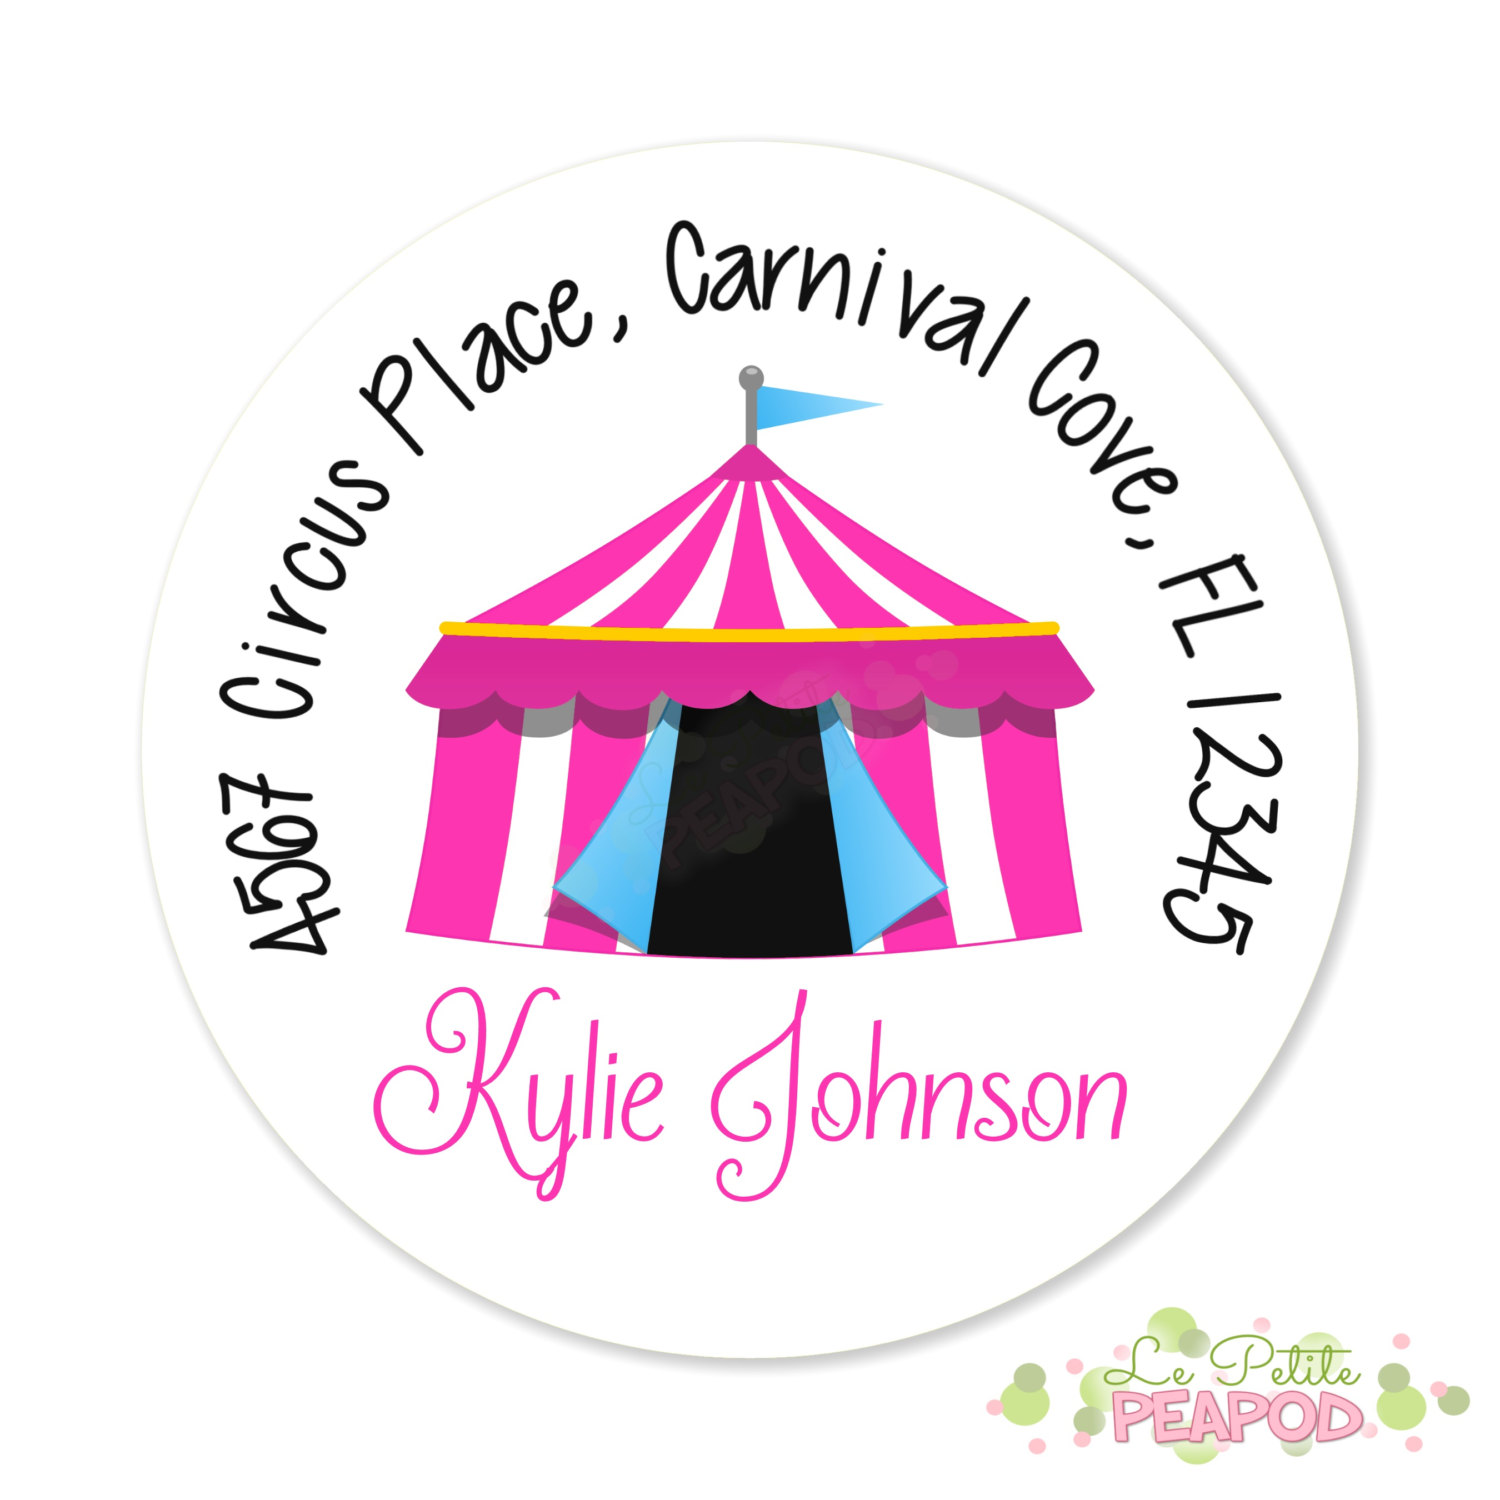 Carnival clipart pink circus tent 2 Tent Tent Vintage Circus